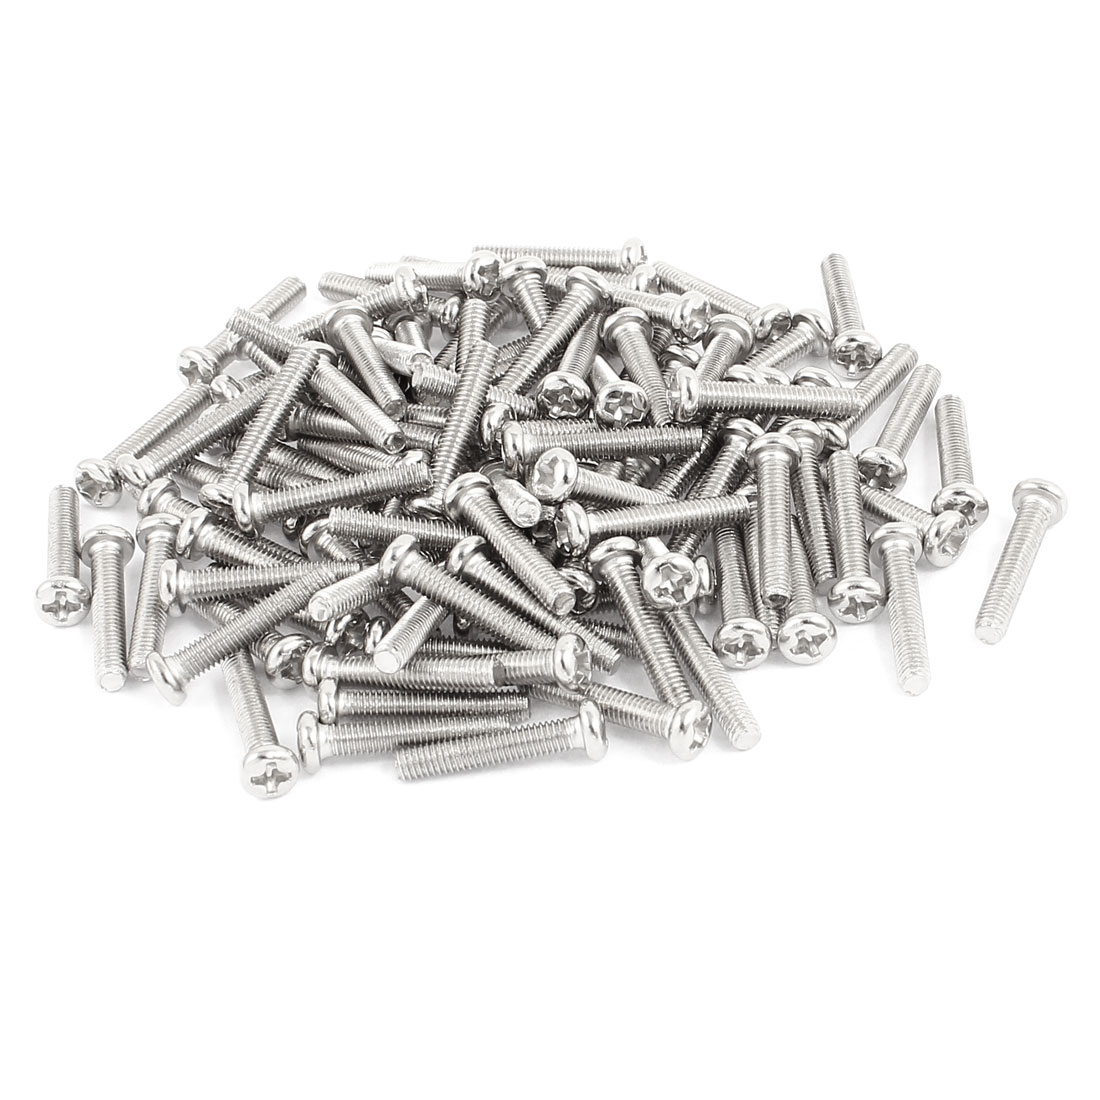 100 Pcs M3x16mm Stainless Steel Round Head Phillips Machine Screws Bolts